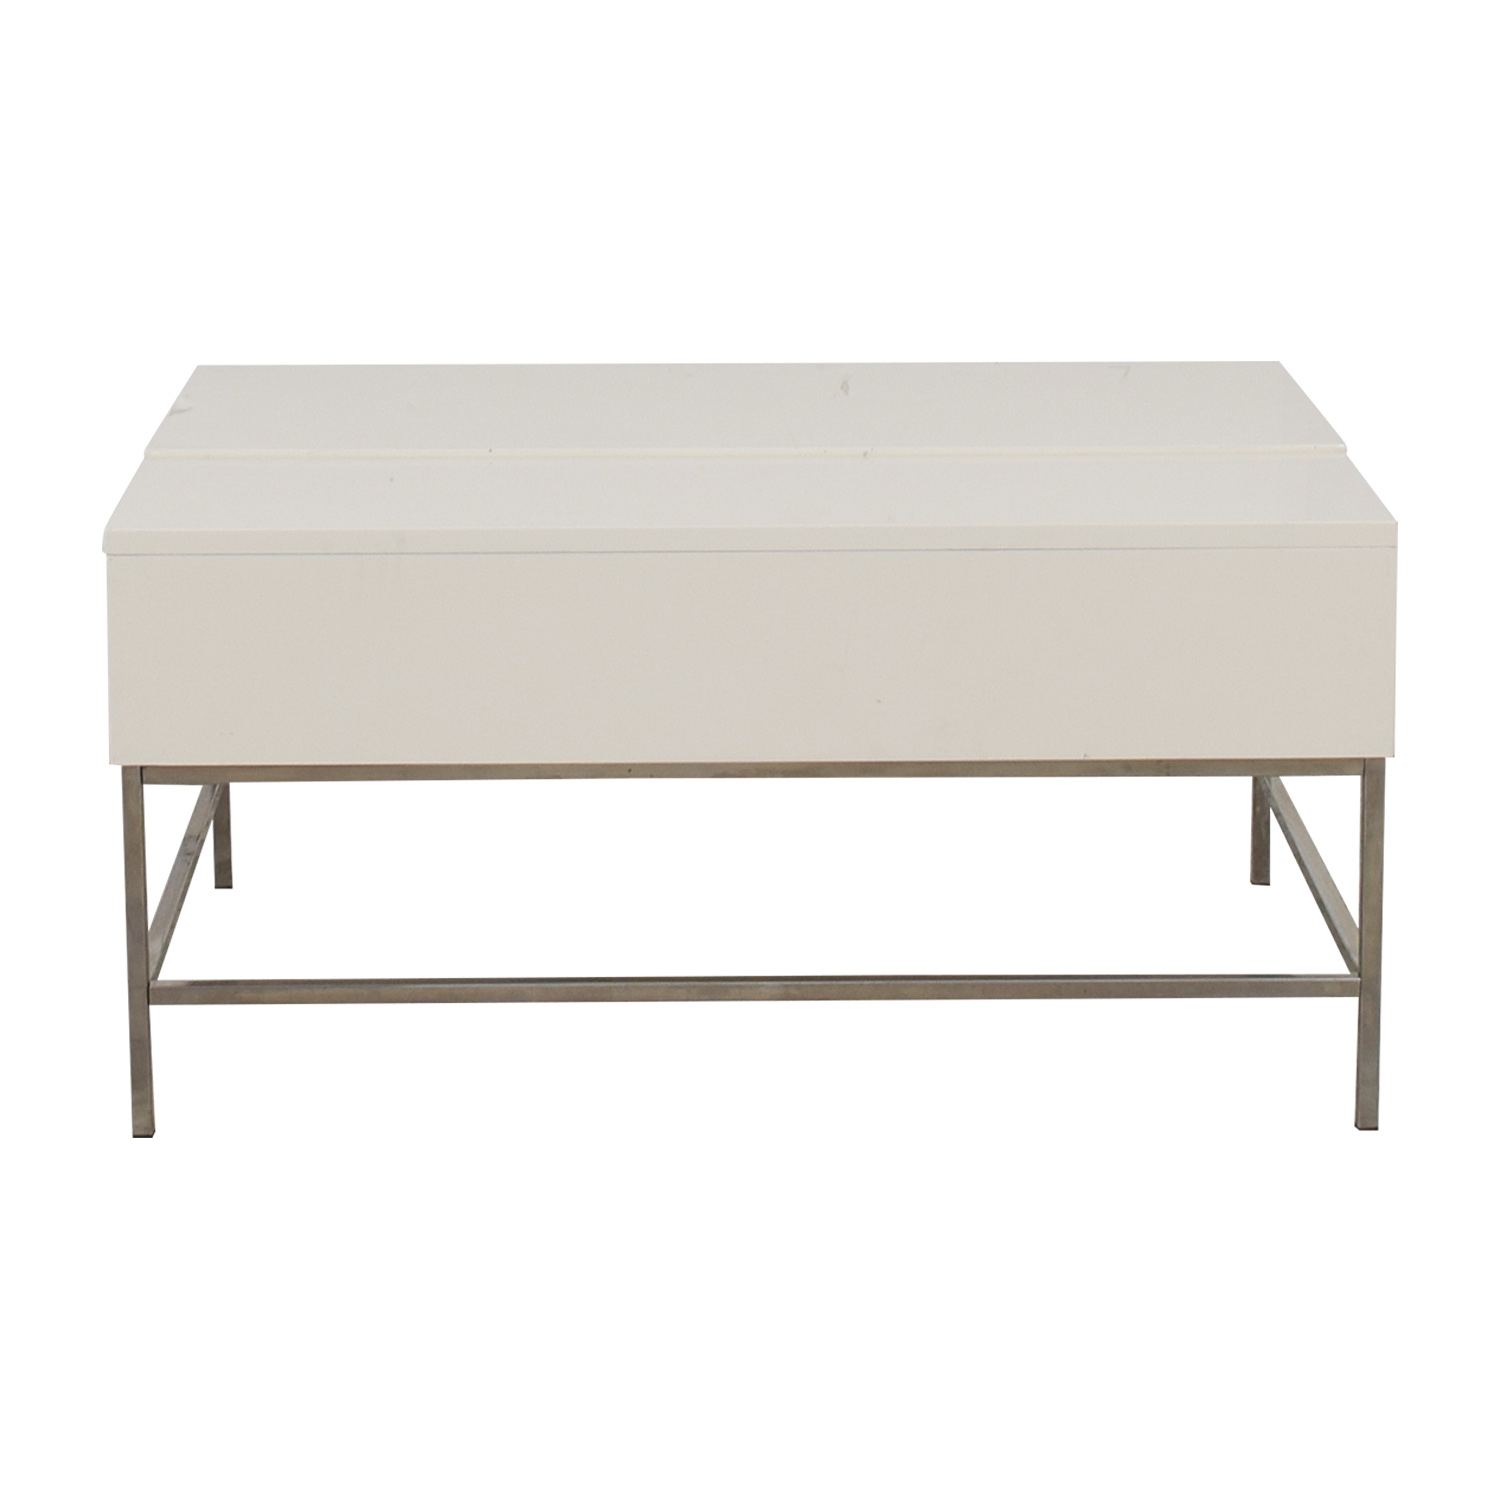 West Elm West Elm Lift-Top White Coffee Table Sofas